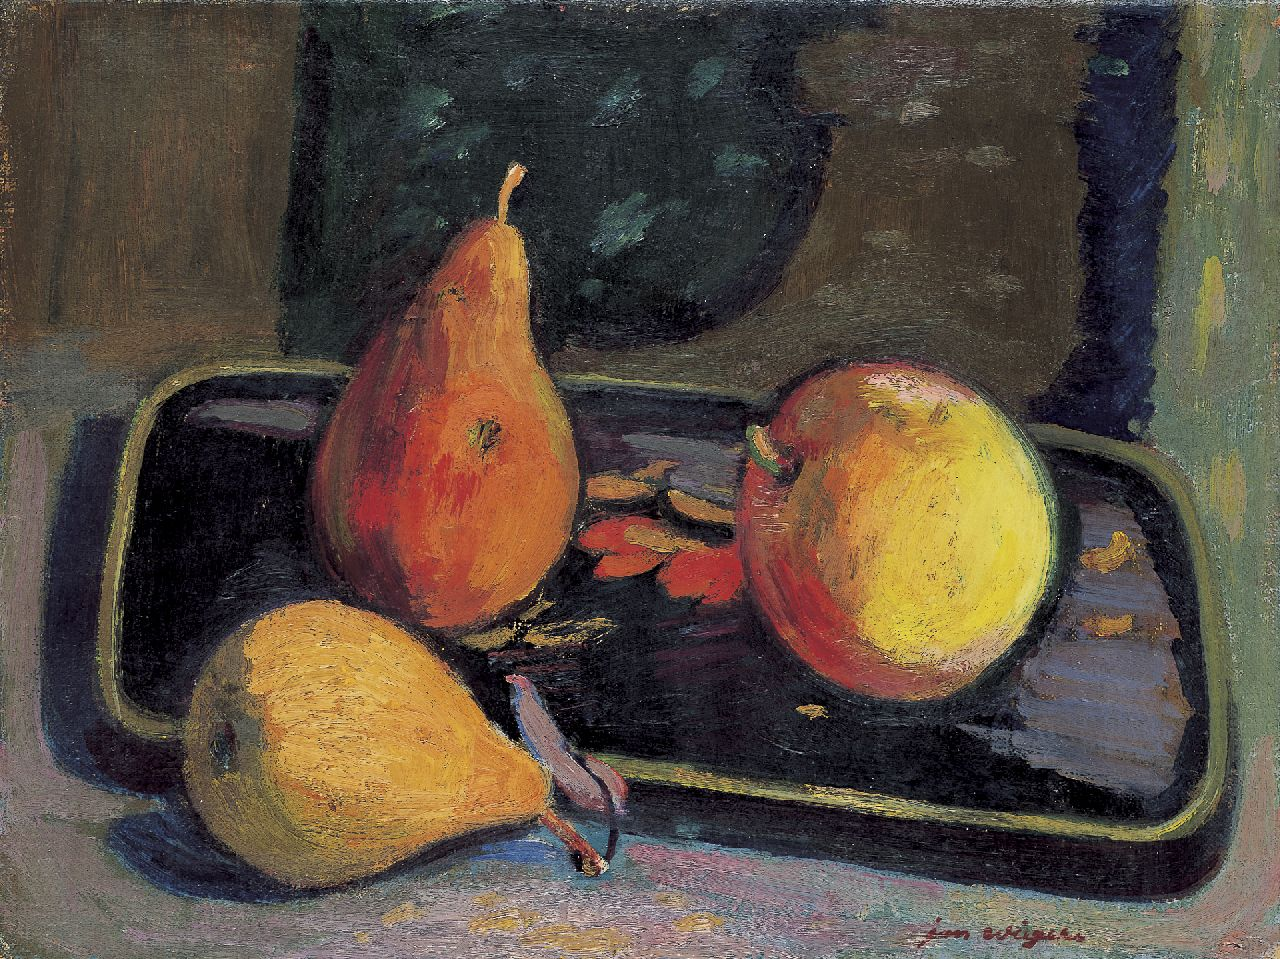 Wiegers J.  | Jan Wiegers, A still life with pears and a apple, oil on canvas 30.2 x 40.0 cm, signed l.r.